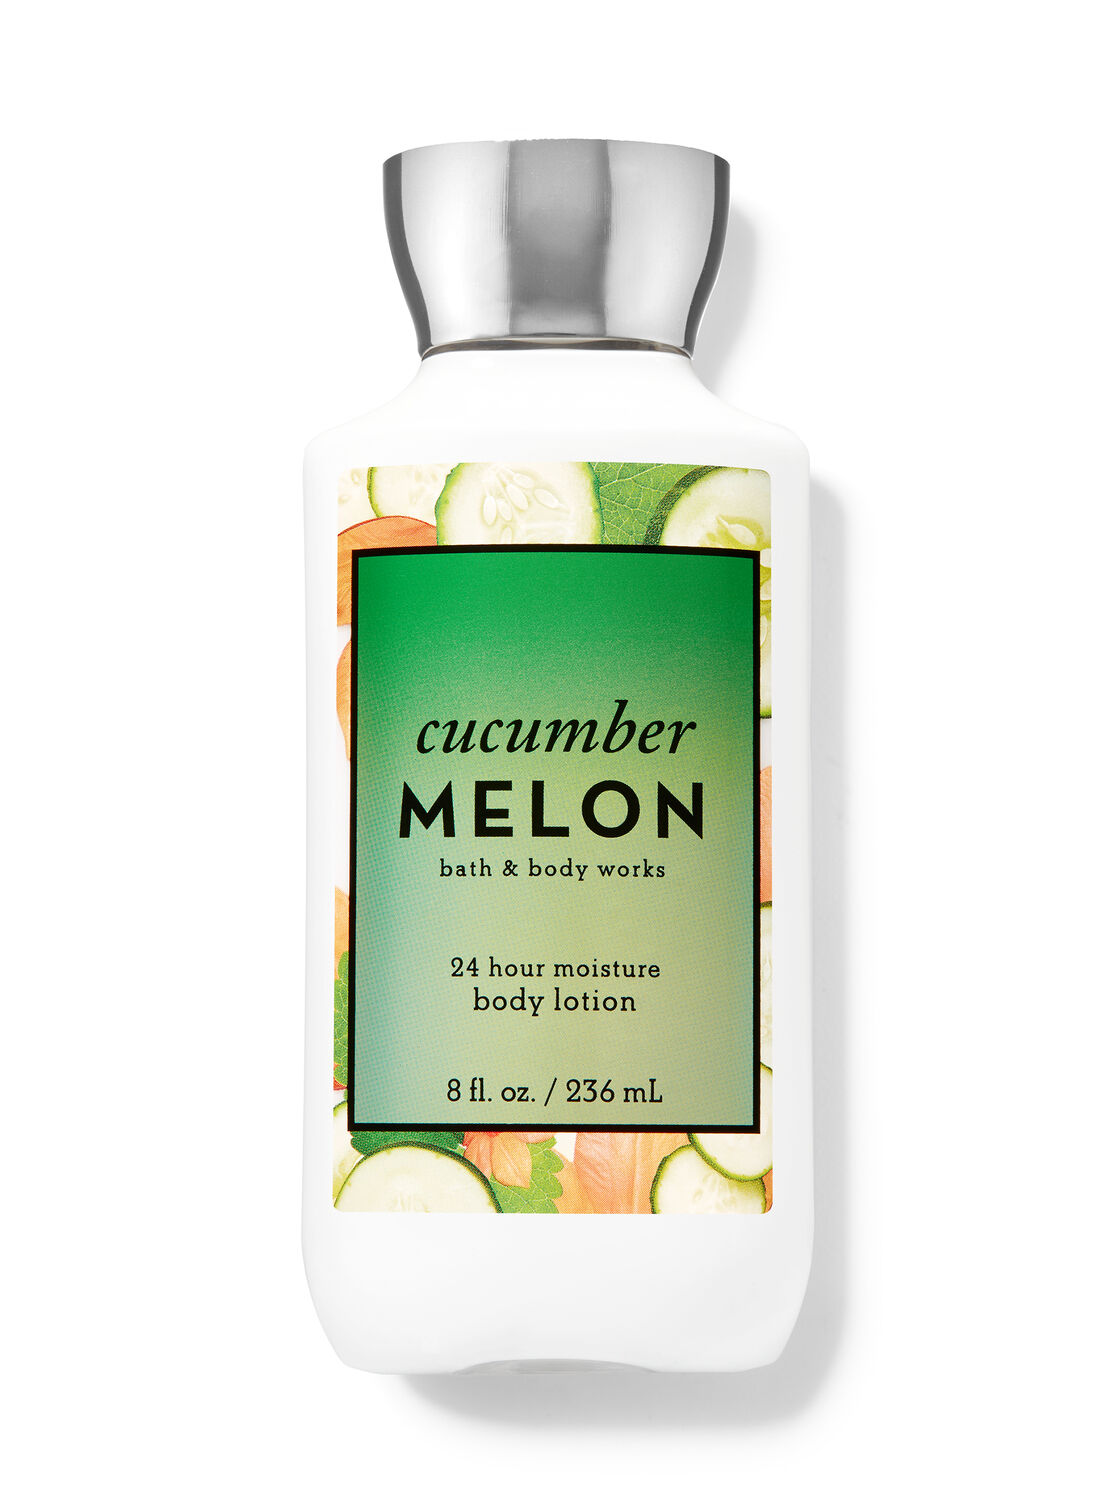 Limoncello Bath And Body Works Discontinued : limoncello, works, discontinued, Retired, Scents, Discontinued, Fragrances, Works